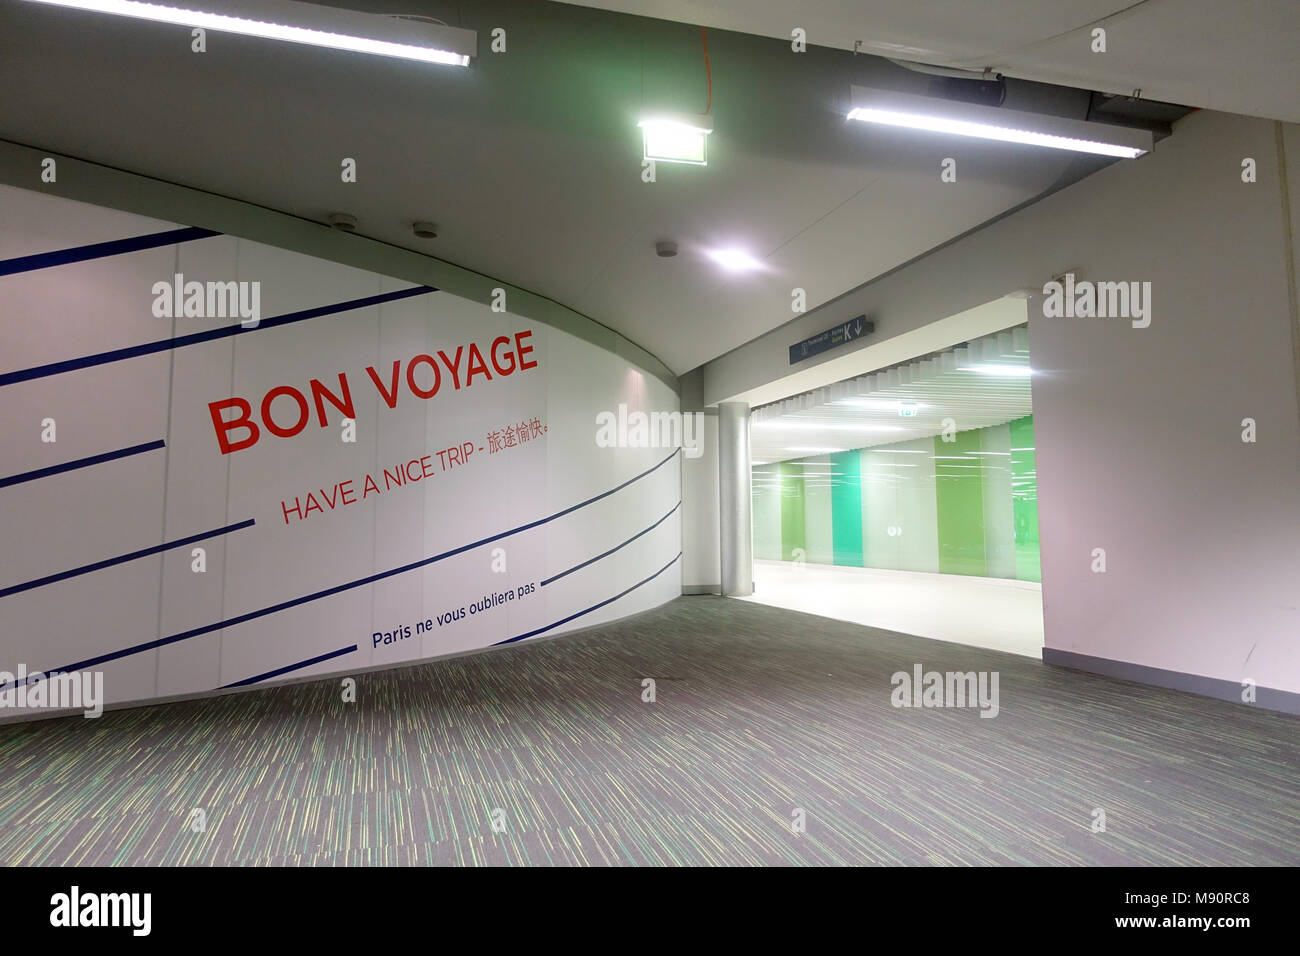 Roissy Charles de Gaulle airport. Bon voyage sign.  France. - Stock Image